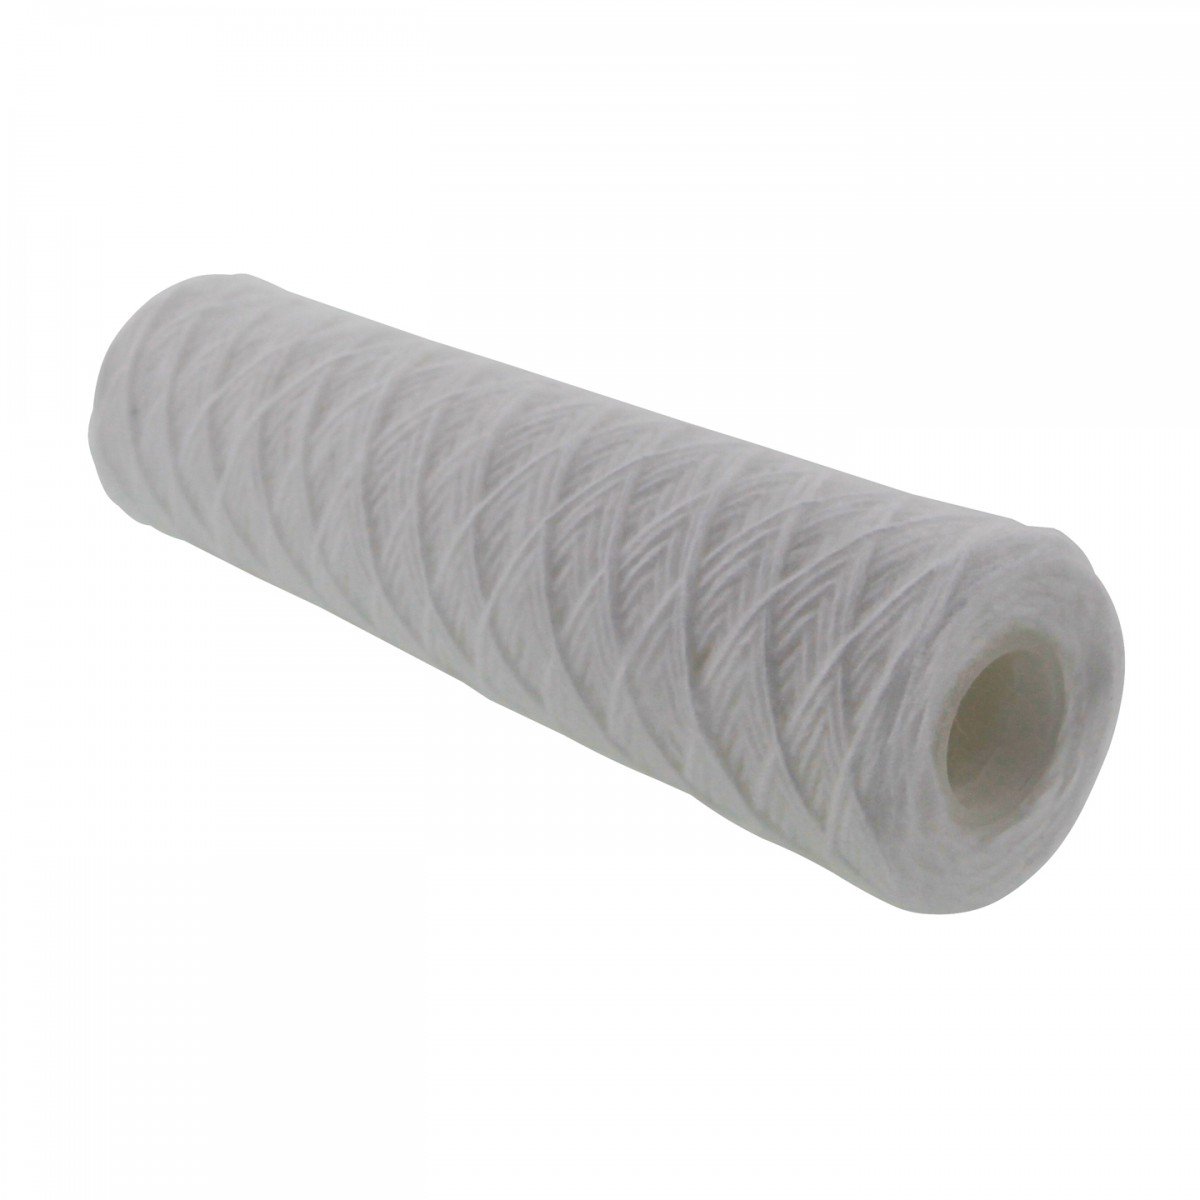 Swc 25 1005 Hydronix String Wound Water Filter